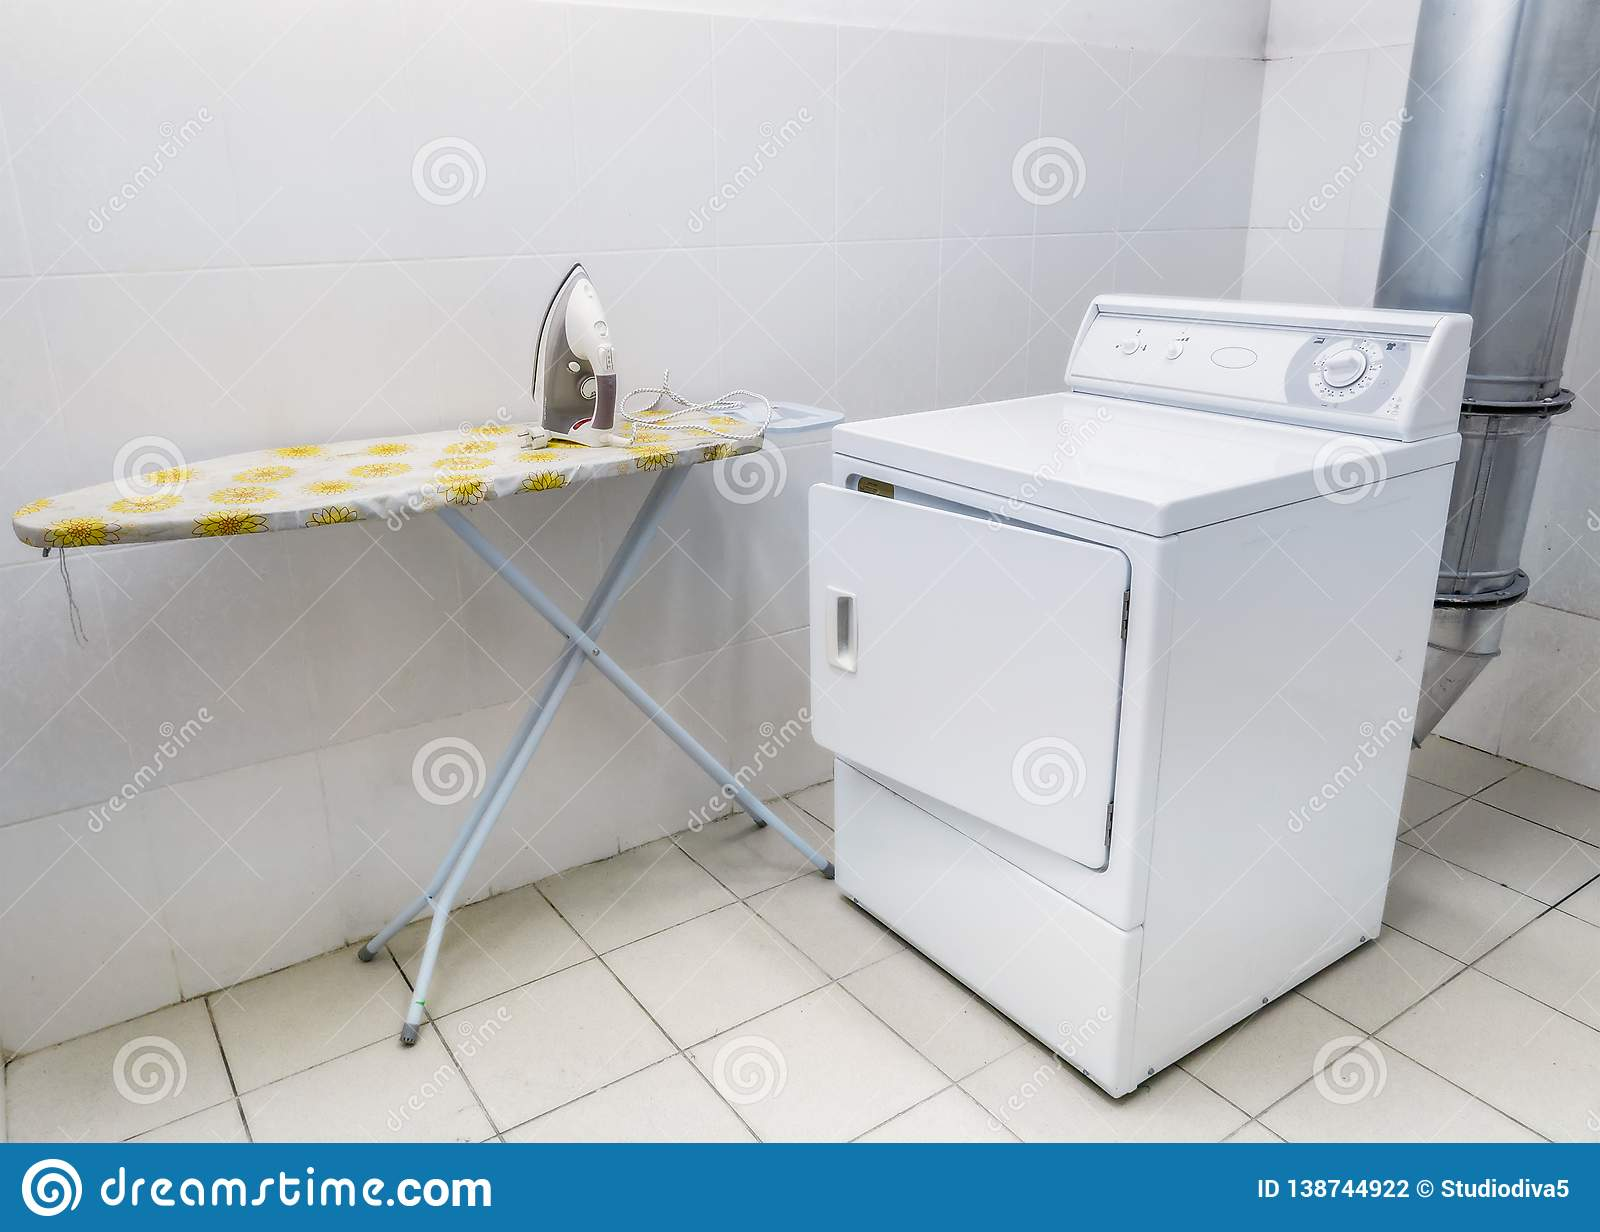 Laundromat. Laundry room for clothes. Iron and washing machine